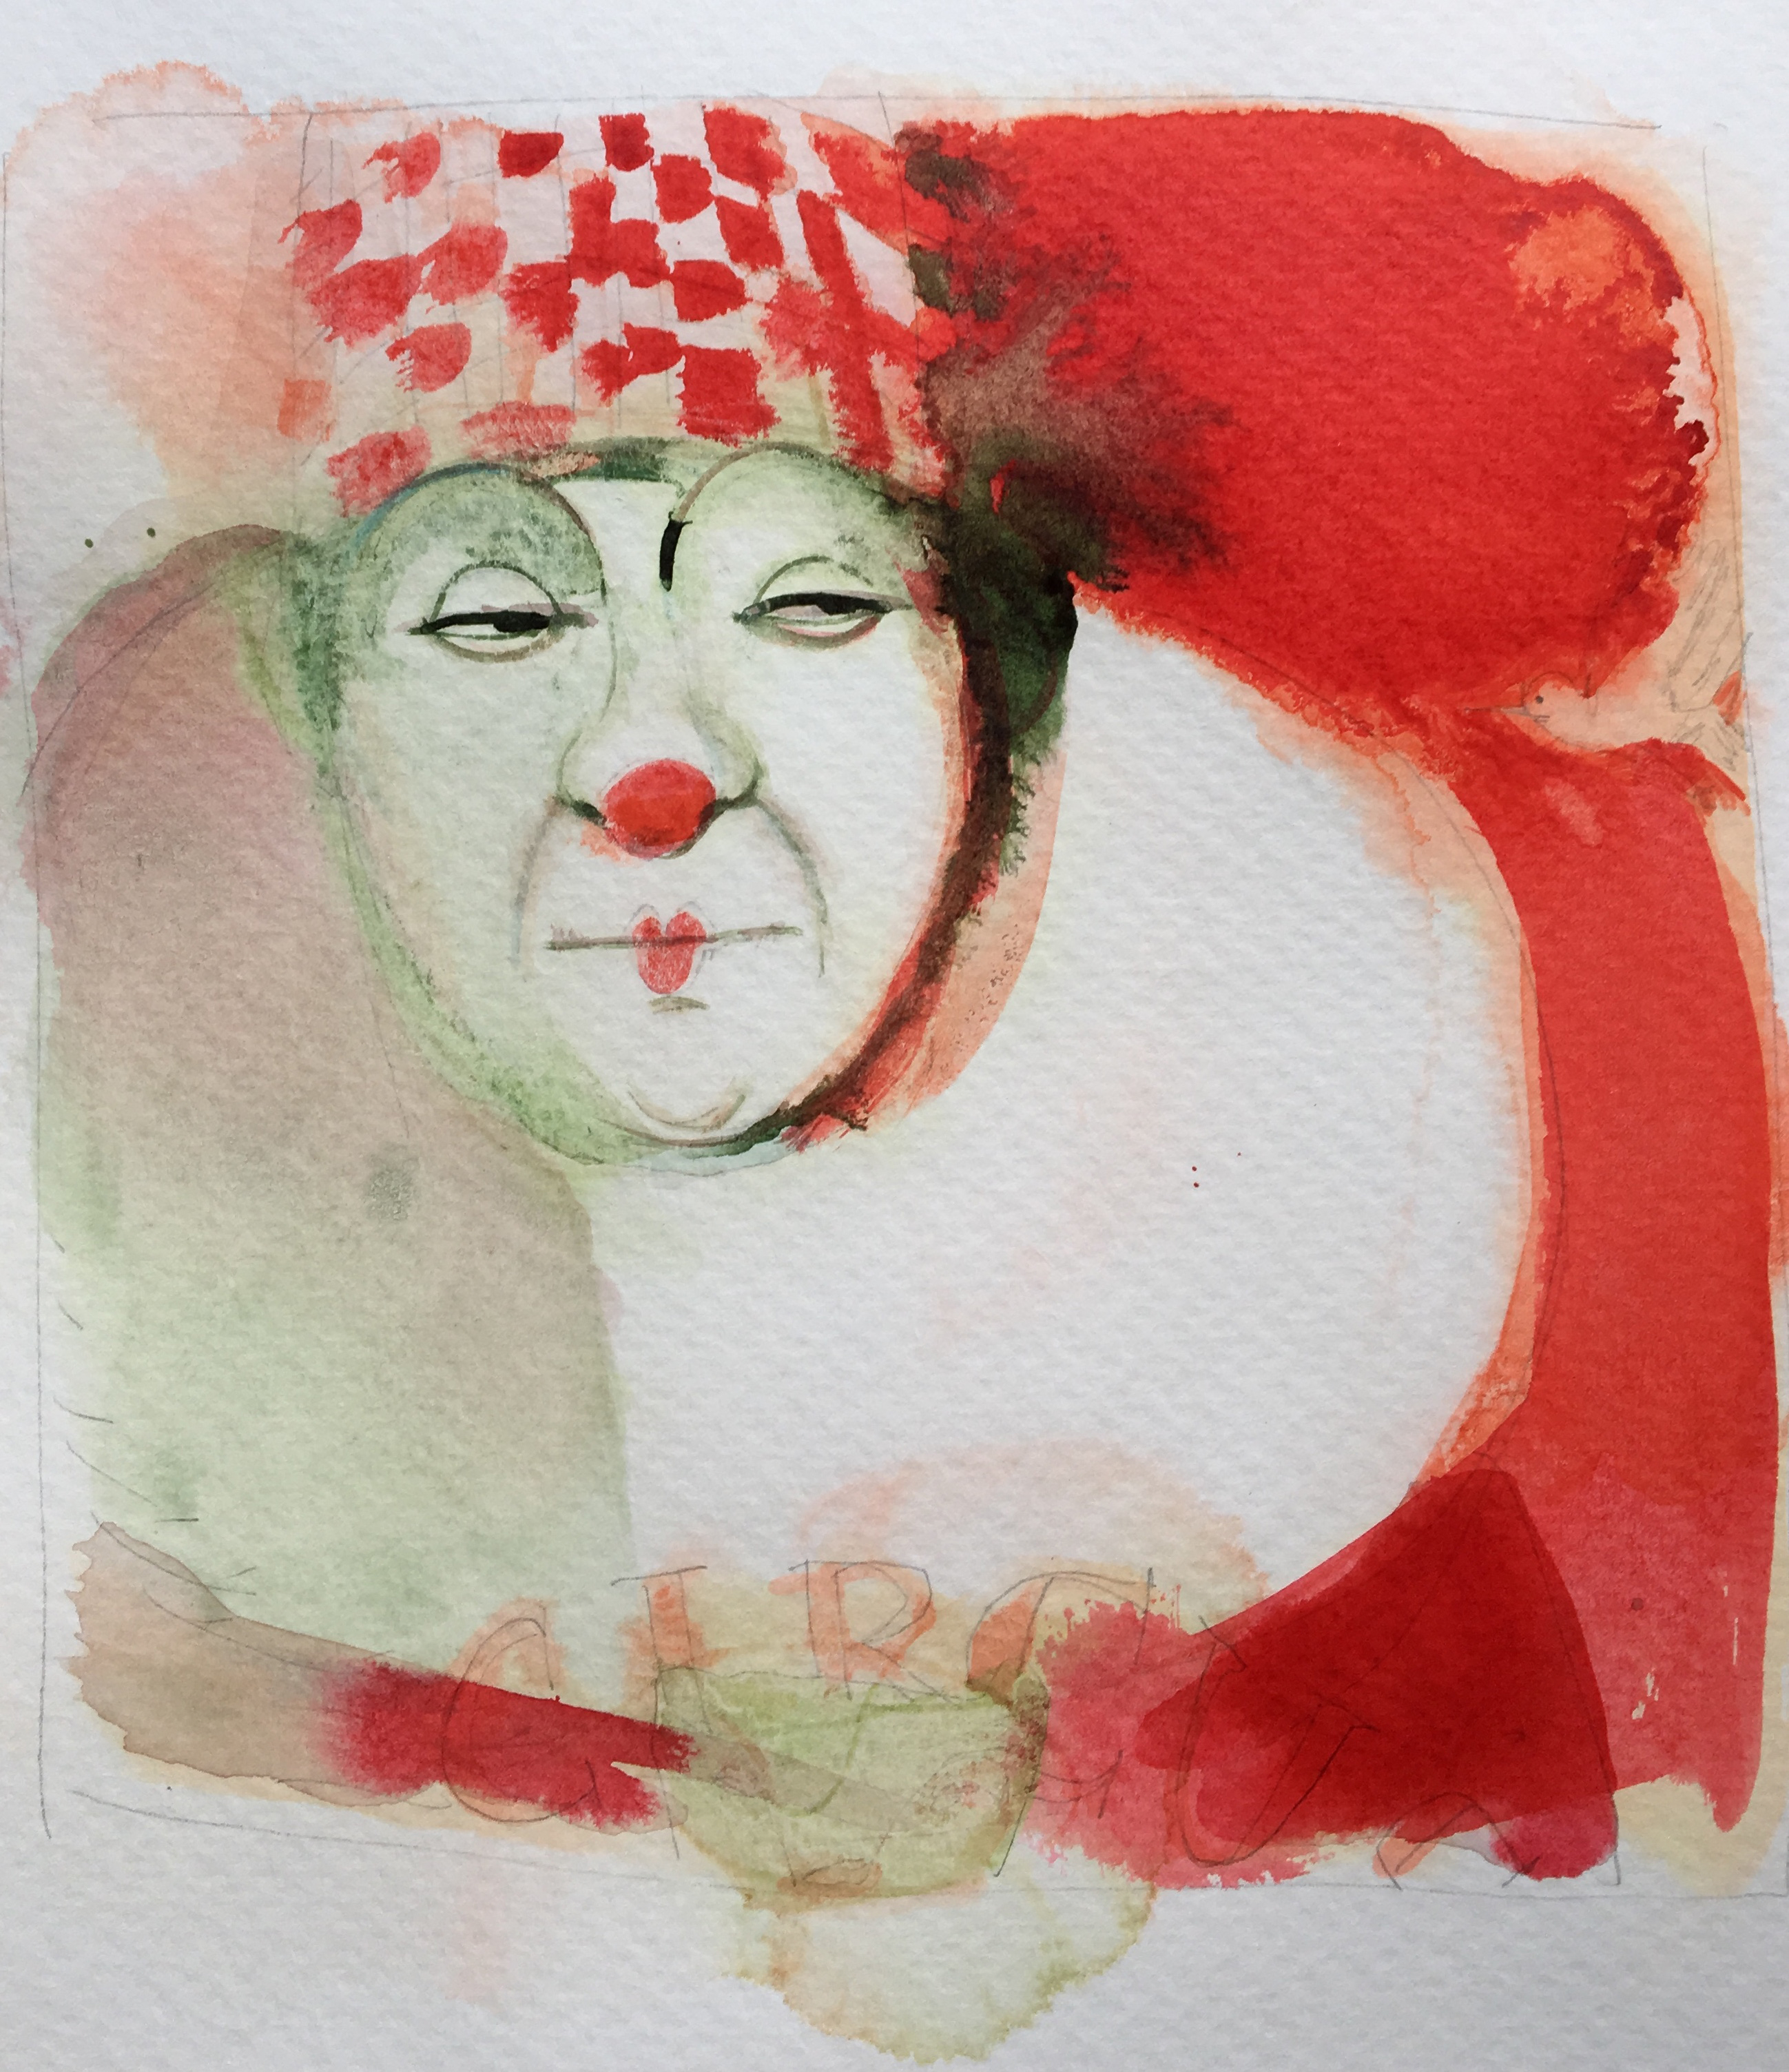 Watercolor illustration, circus, ink, clown